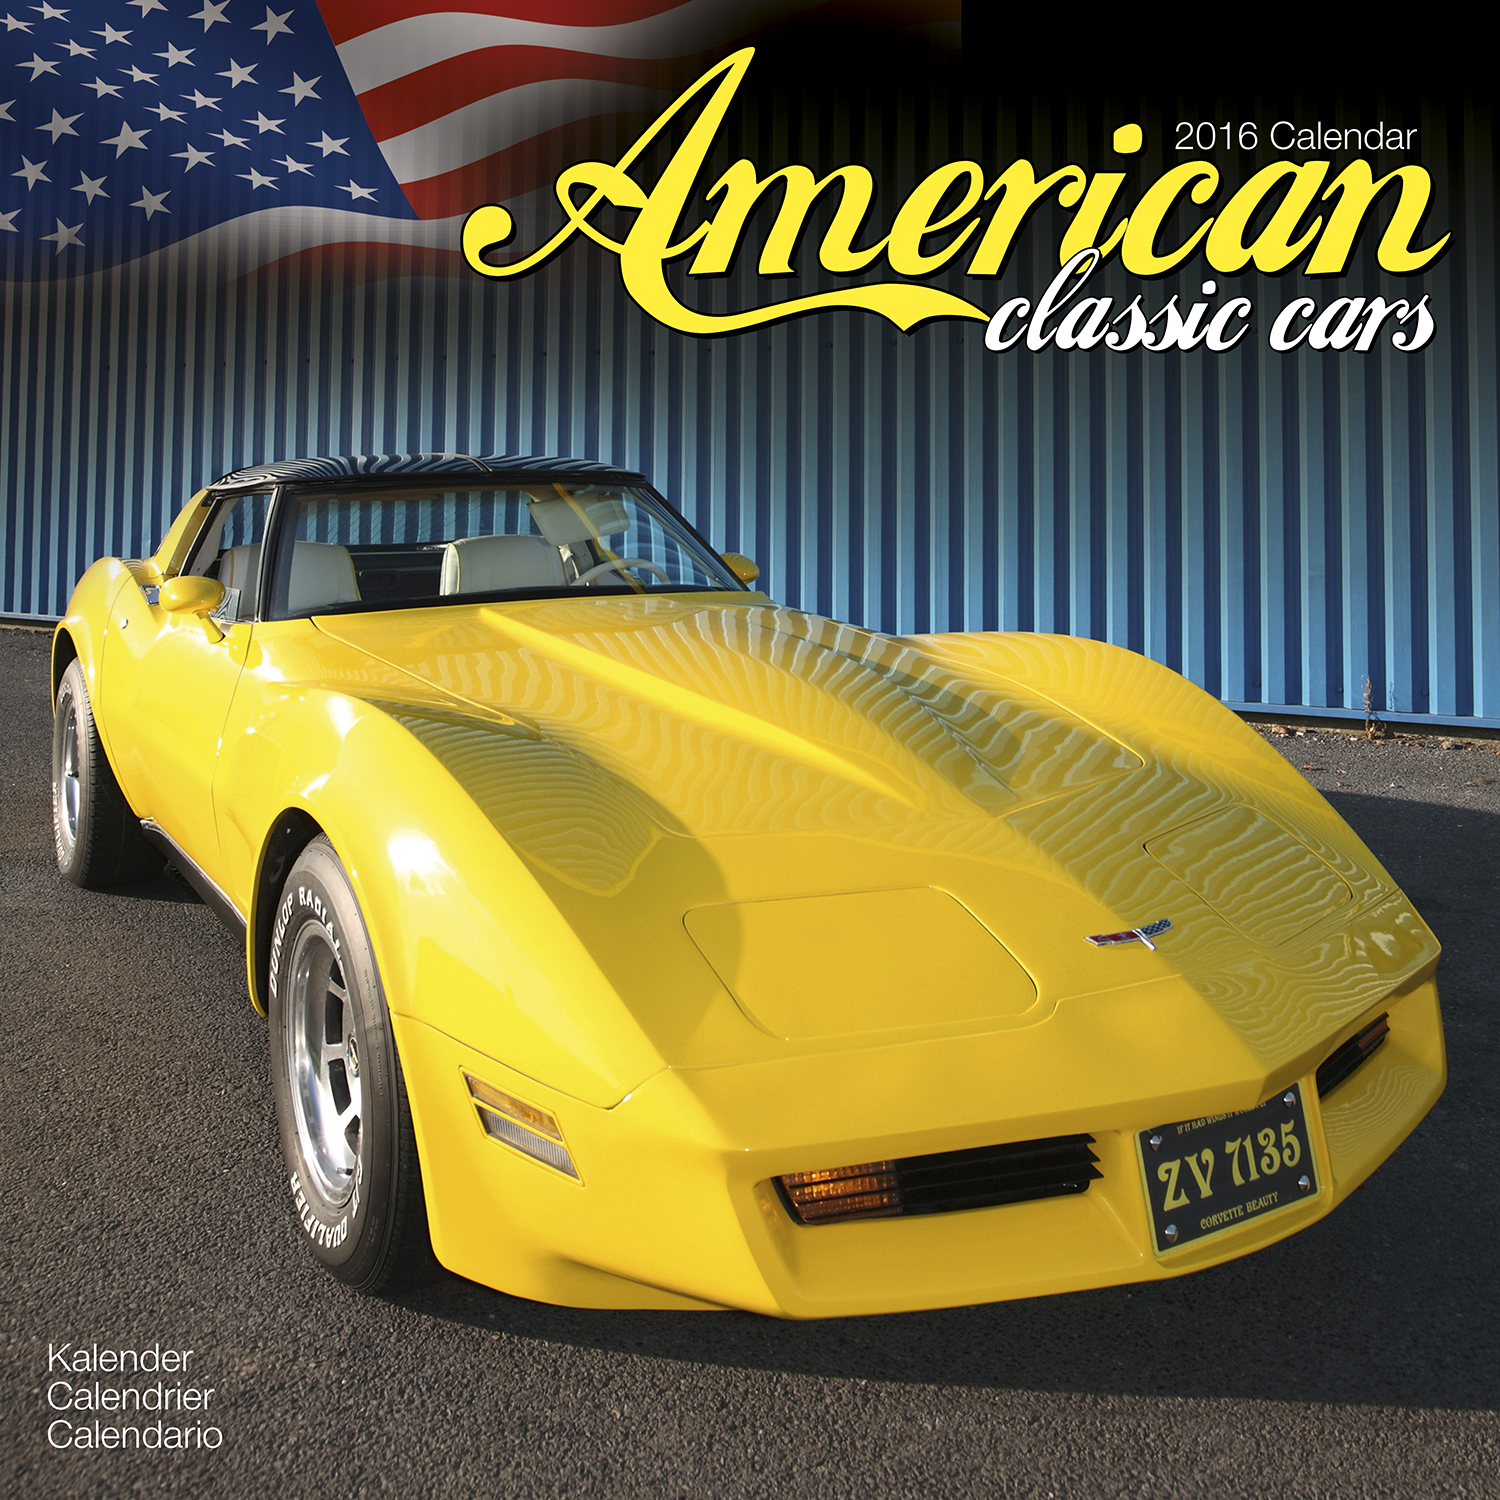 American classic cars calendar 2016 pet prints inc for American classic cars